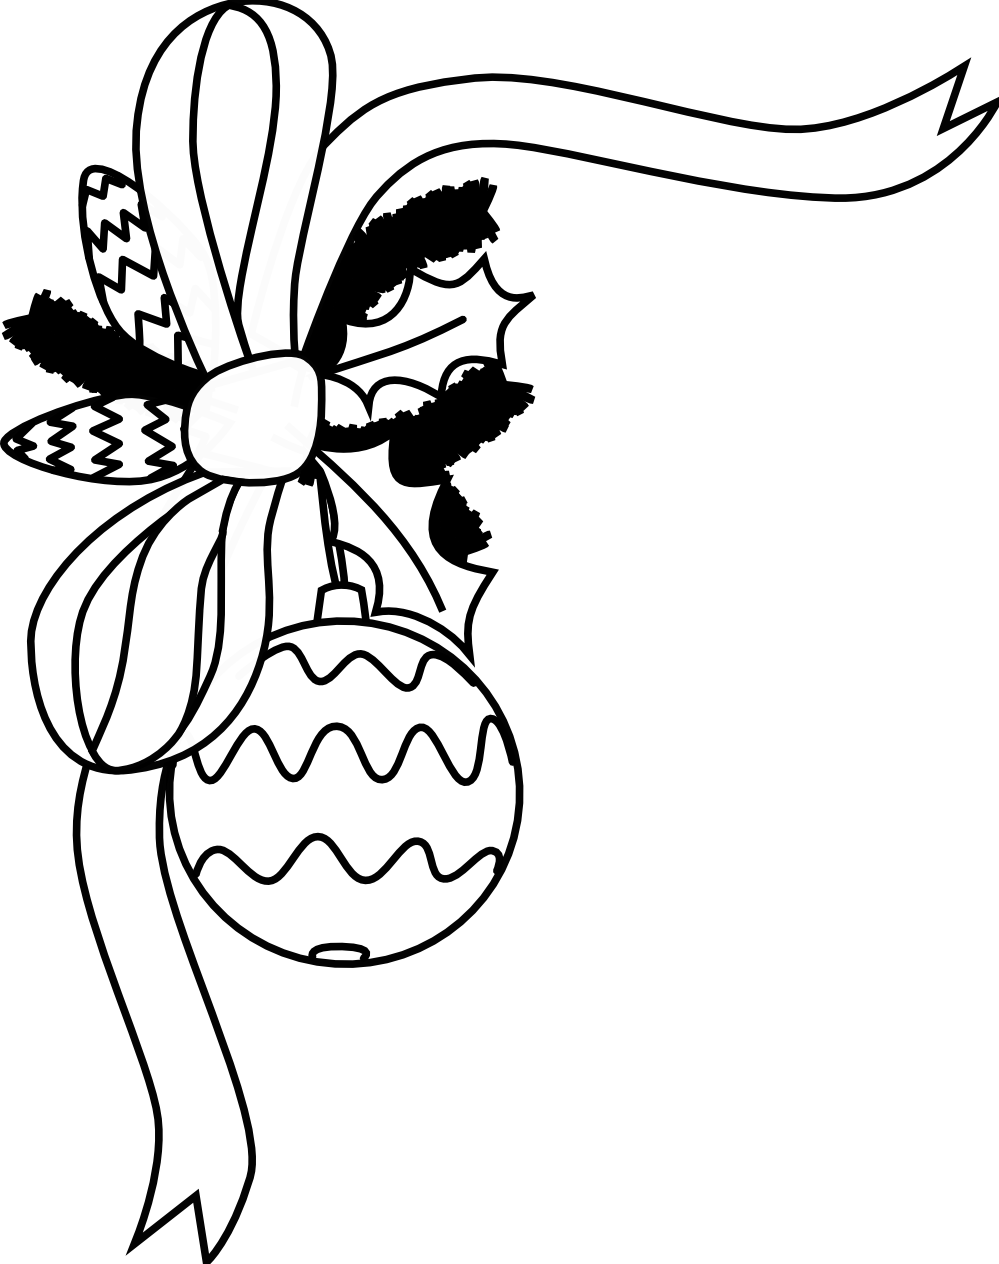 Merry Christmas Clipart Black And White   Clipart Panda ...  Merry Christmas...